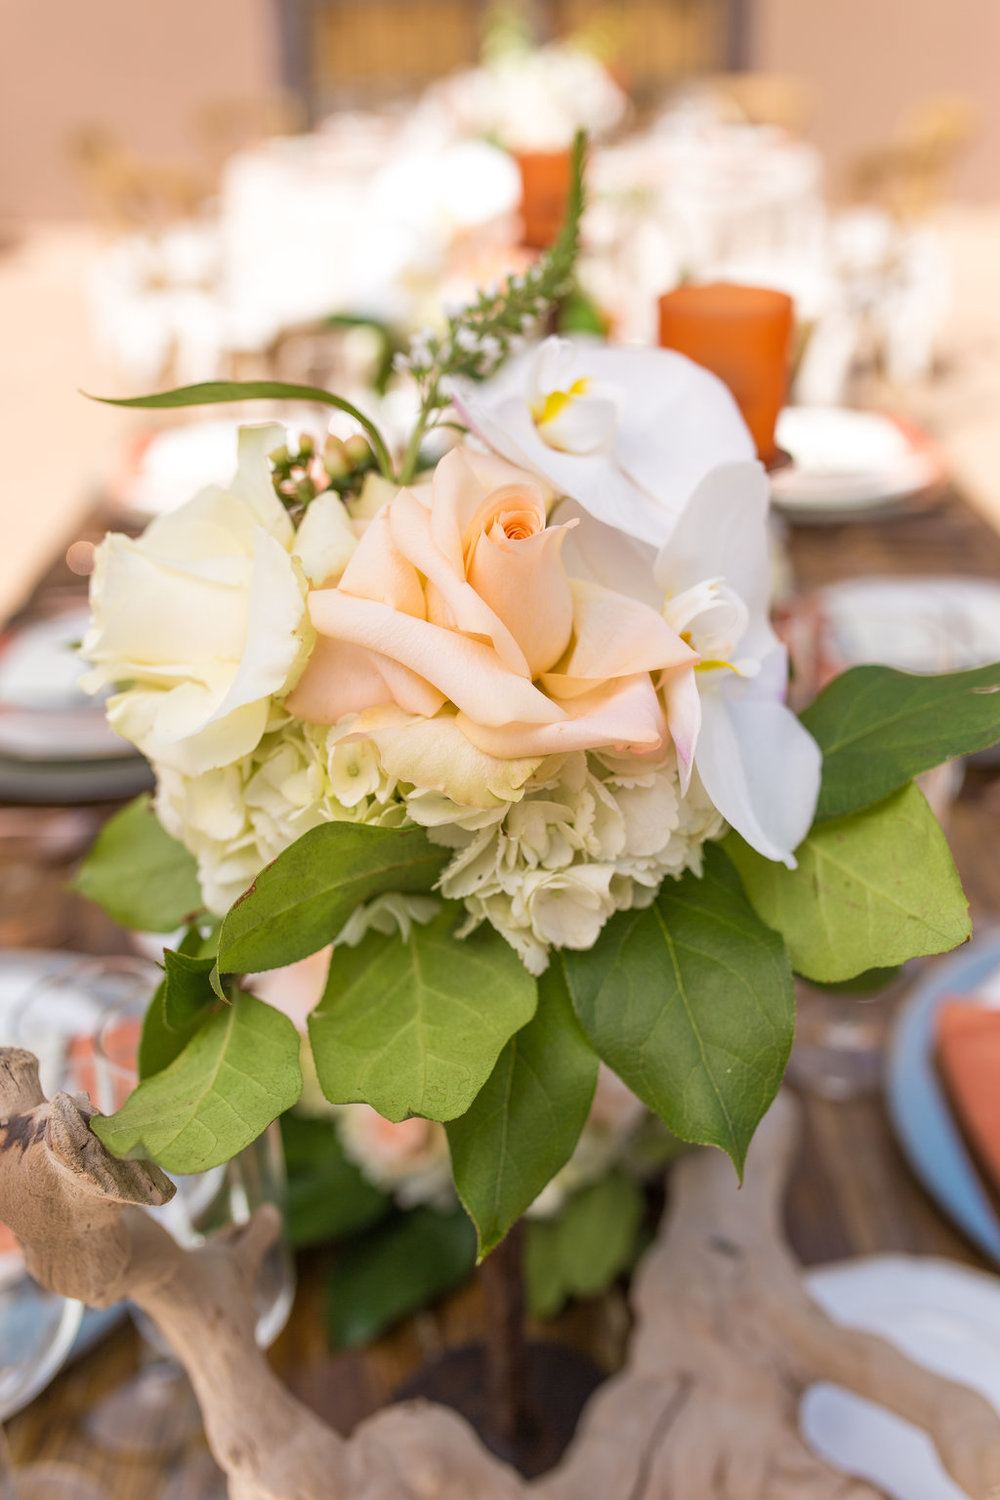 Phoenix Scottsdale Arizona Wedding Planner, Orchids, blush, peach, southwest, elegant, flowers, roses, rustic, western, wood, centerpiece, cocktail flowers